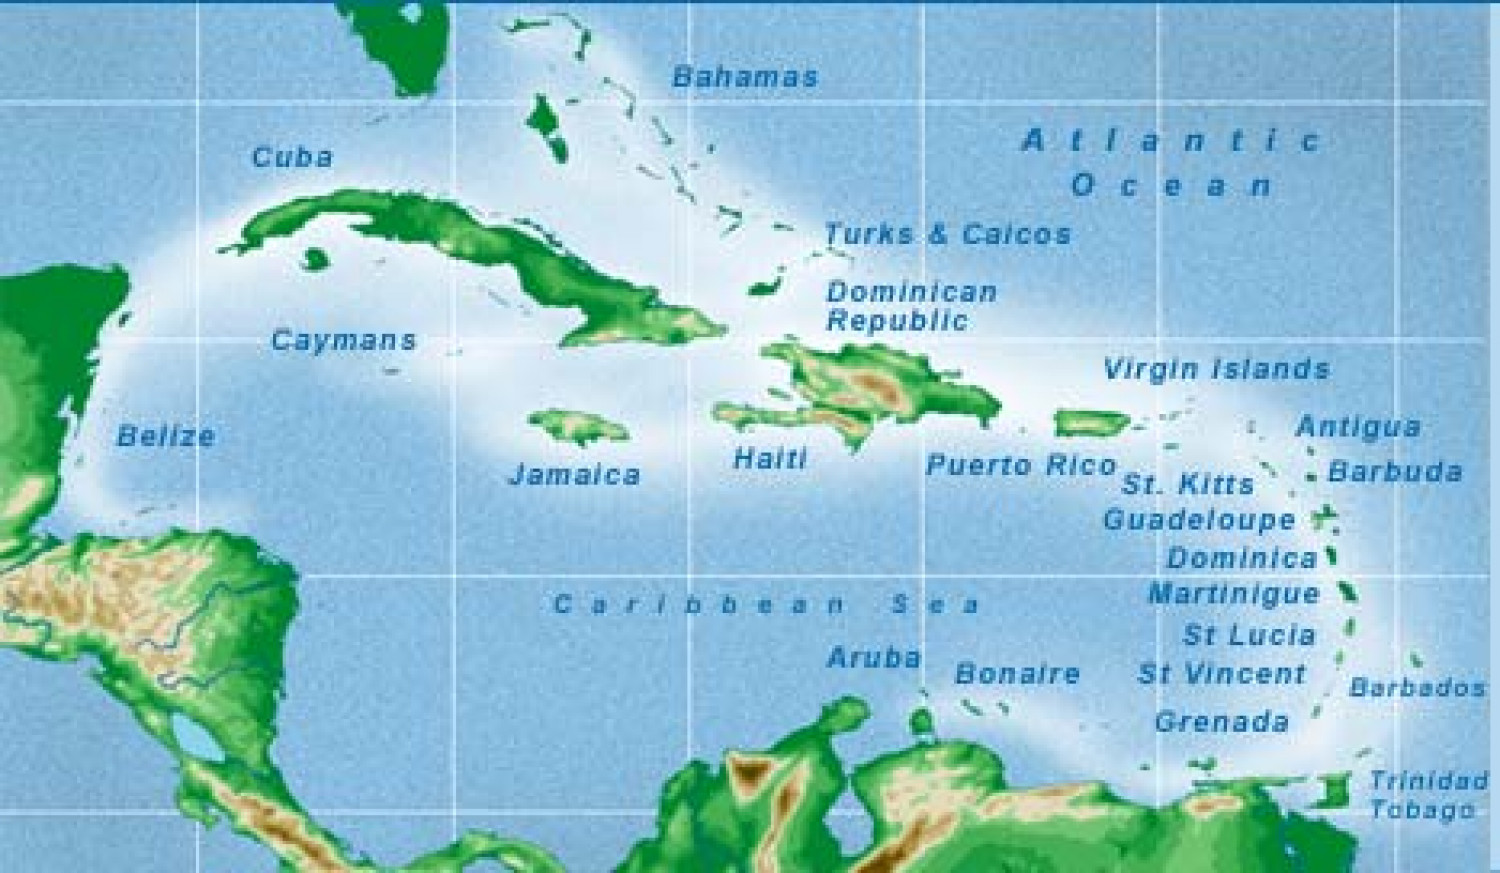 Caribbean Islands Map Visually - Caribbean islands map